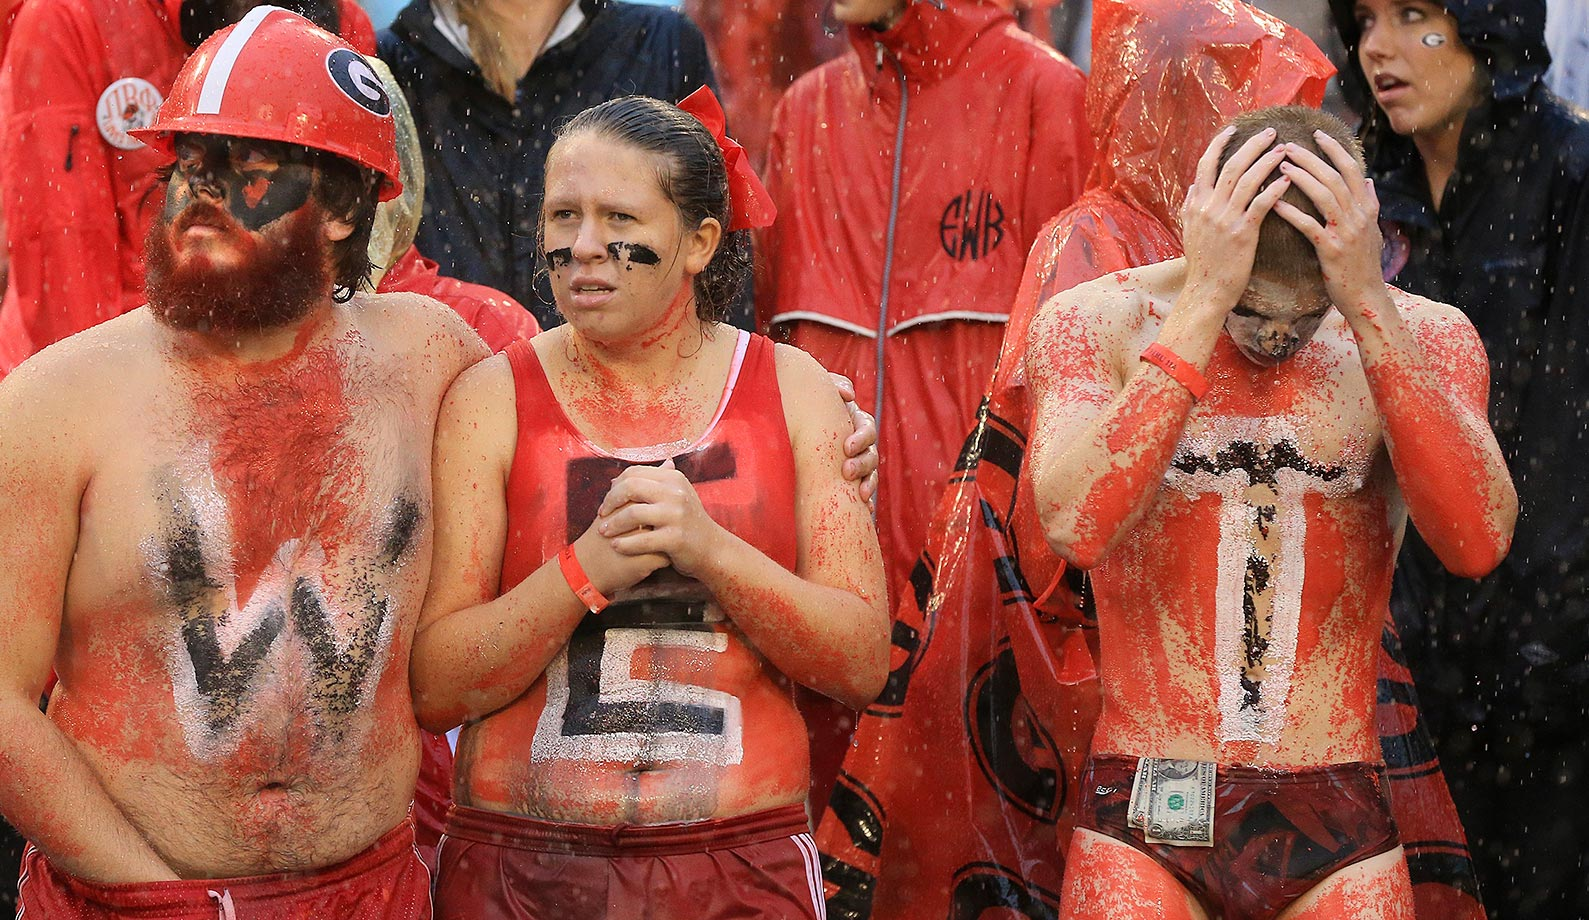 Georgia fans—the more you look the more disturbing.